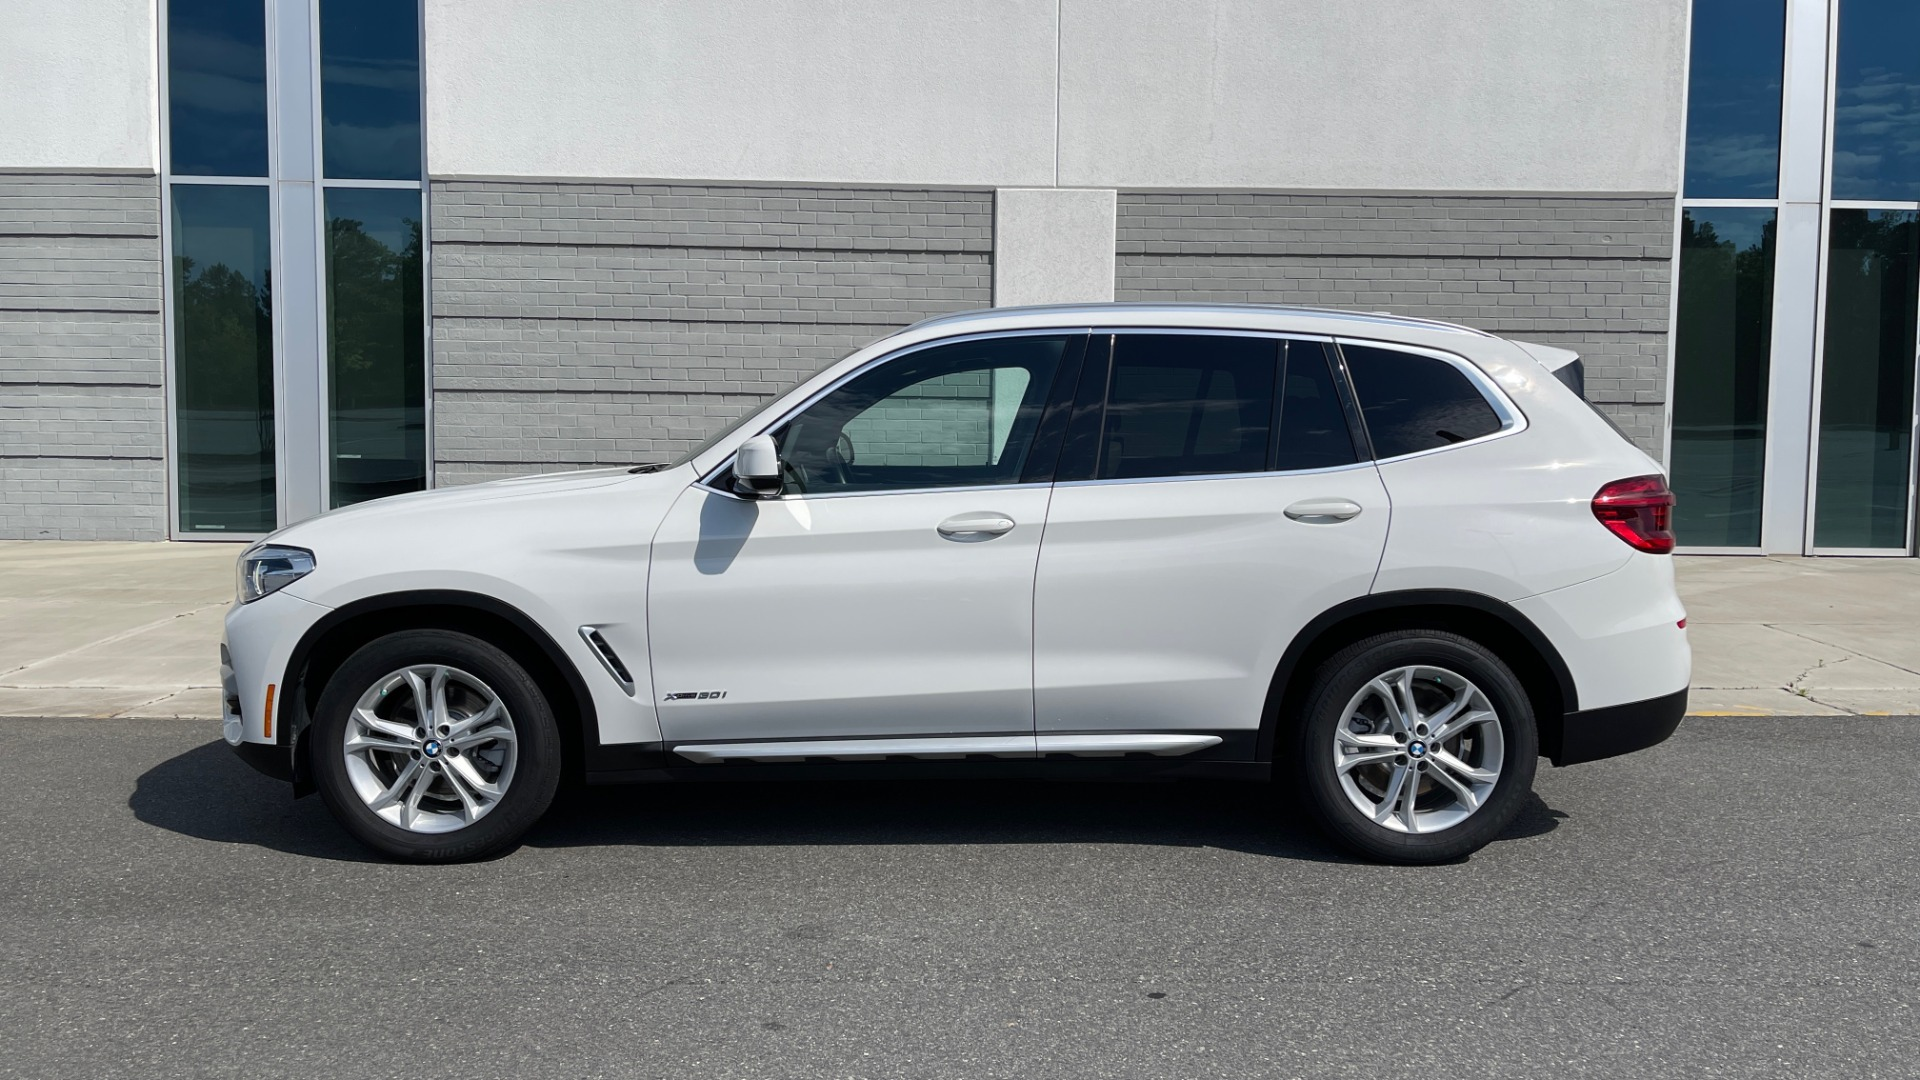 Used 2018 BMW X3 XDRIVE30I CONVENIENCE PKG / HEATED FRONT SEATS / REARVIEW for sale $36,595 at Formula Imports in Charlotte NC 28227 4